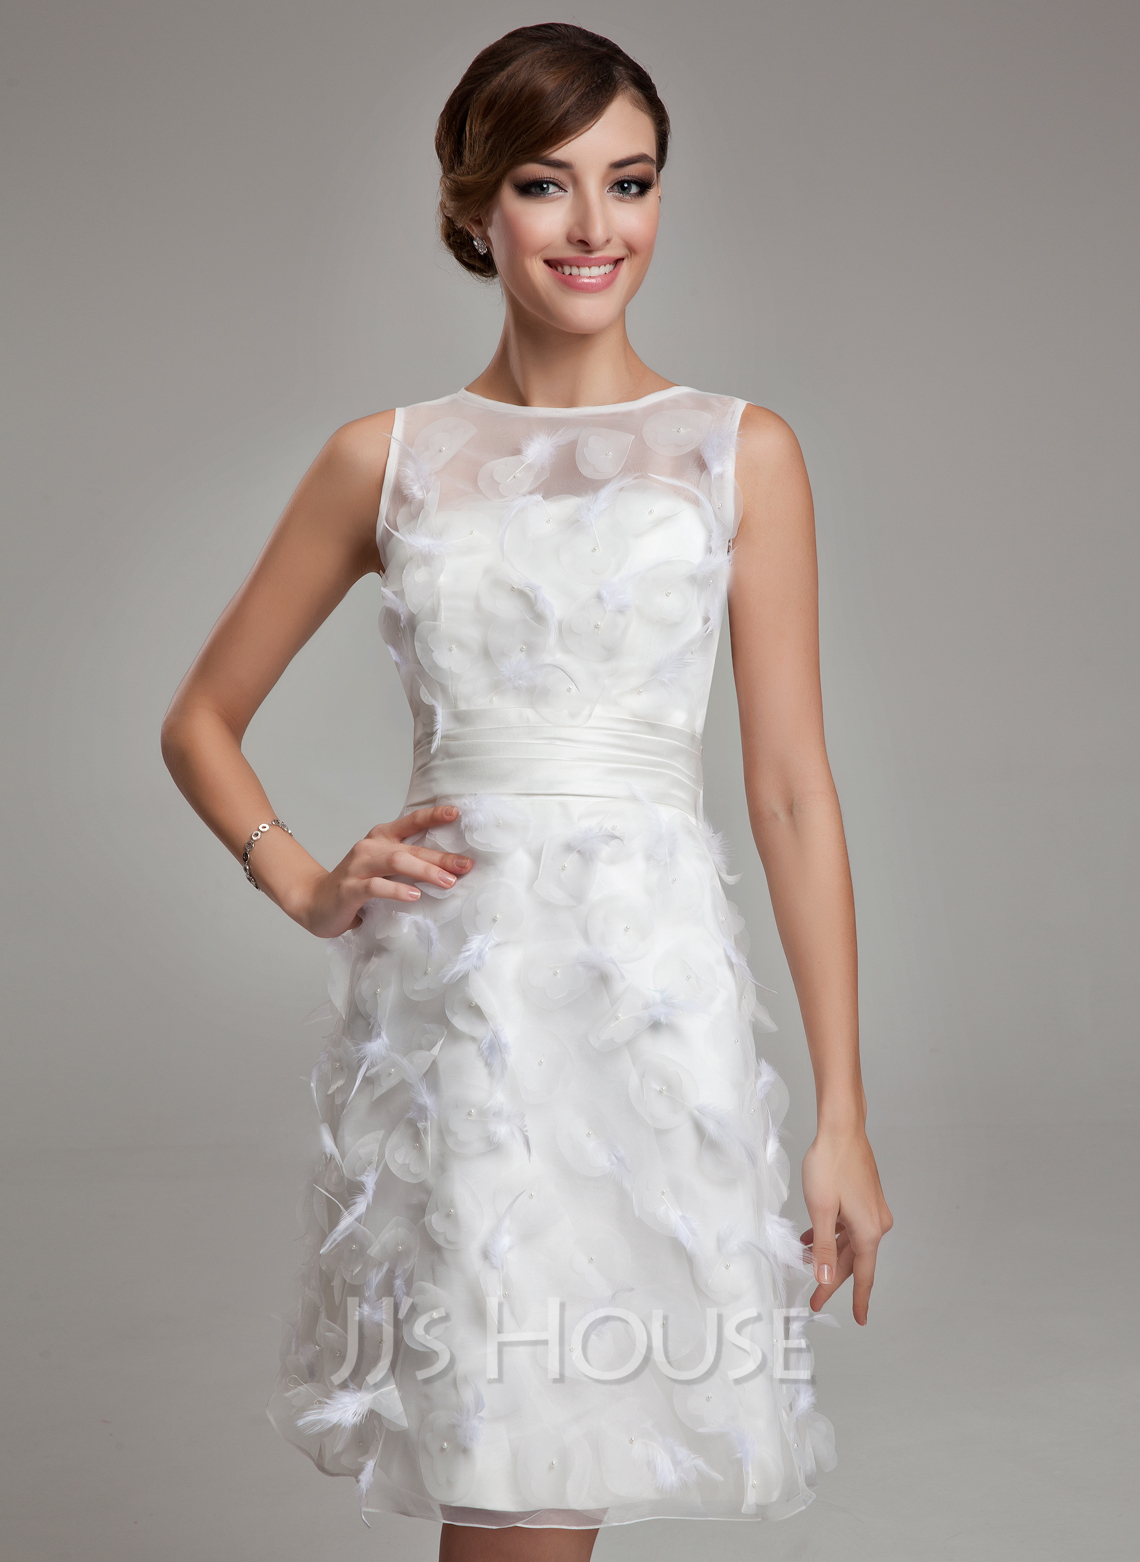 Sheath/Column Scoop Neck Knee-Length Satin Organza Wedding Dress With Feather